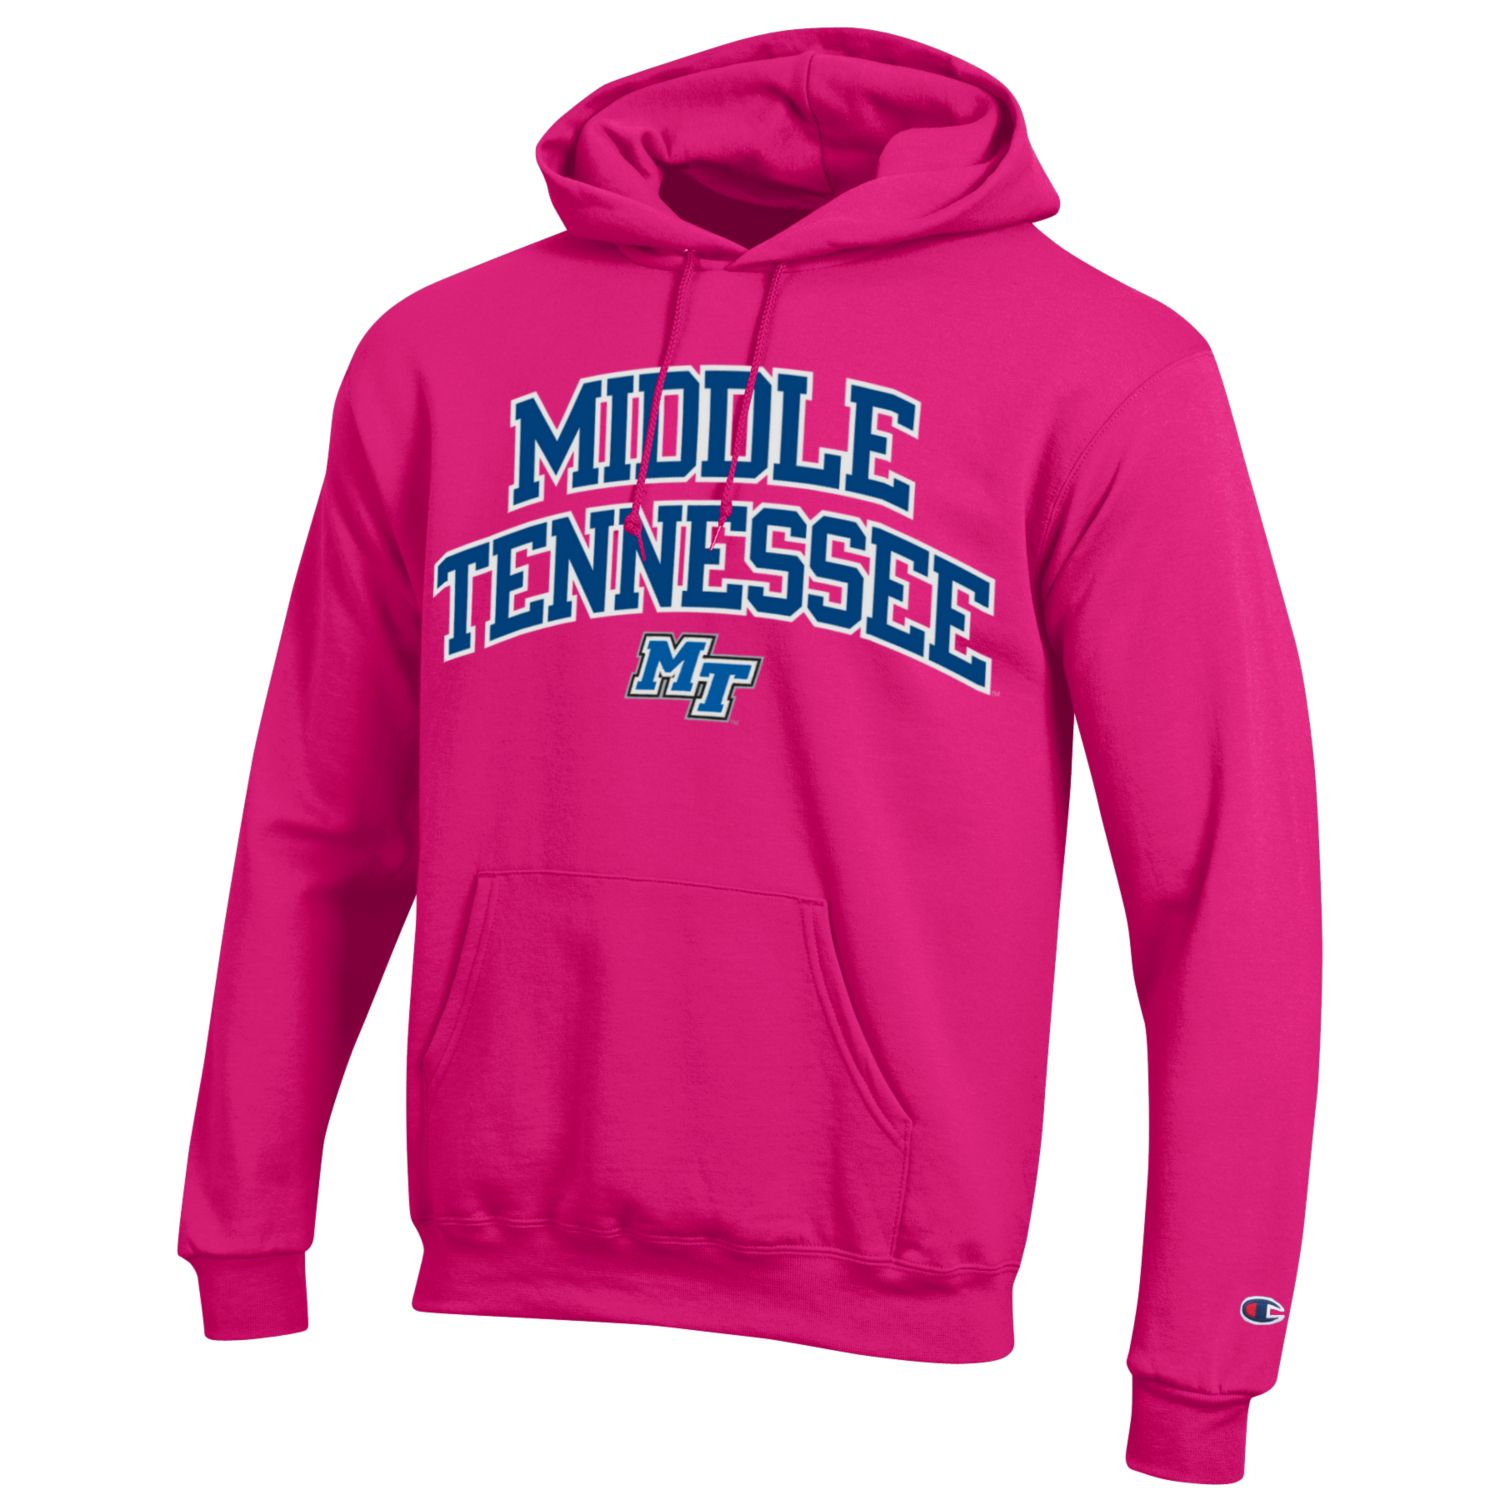 Middle Tennessee Tackle Twill Hoodie